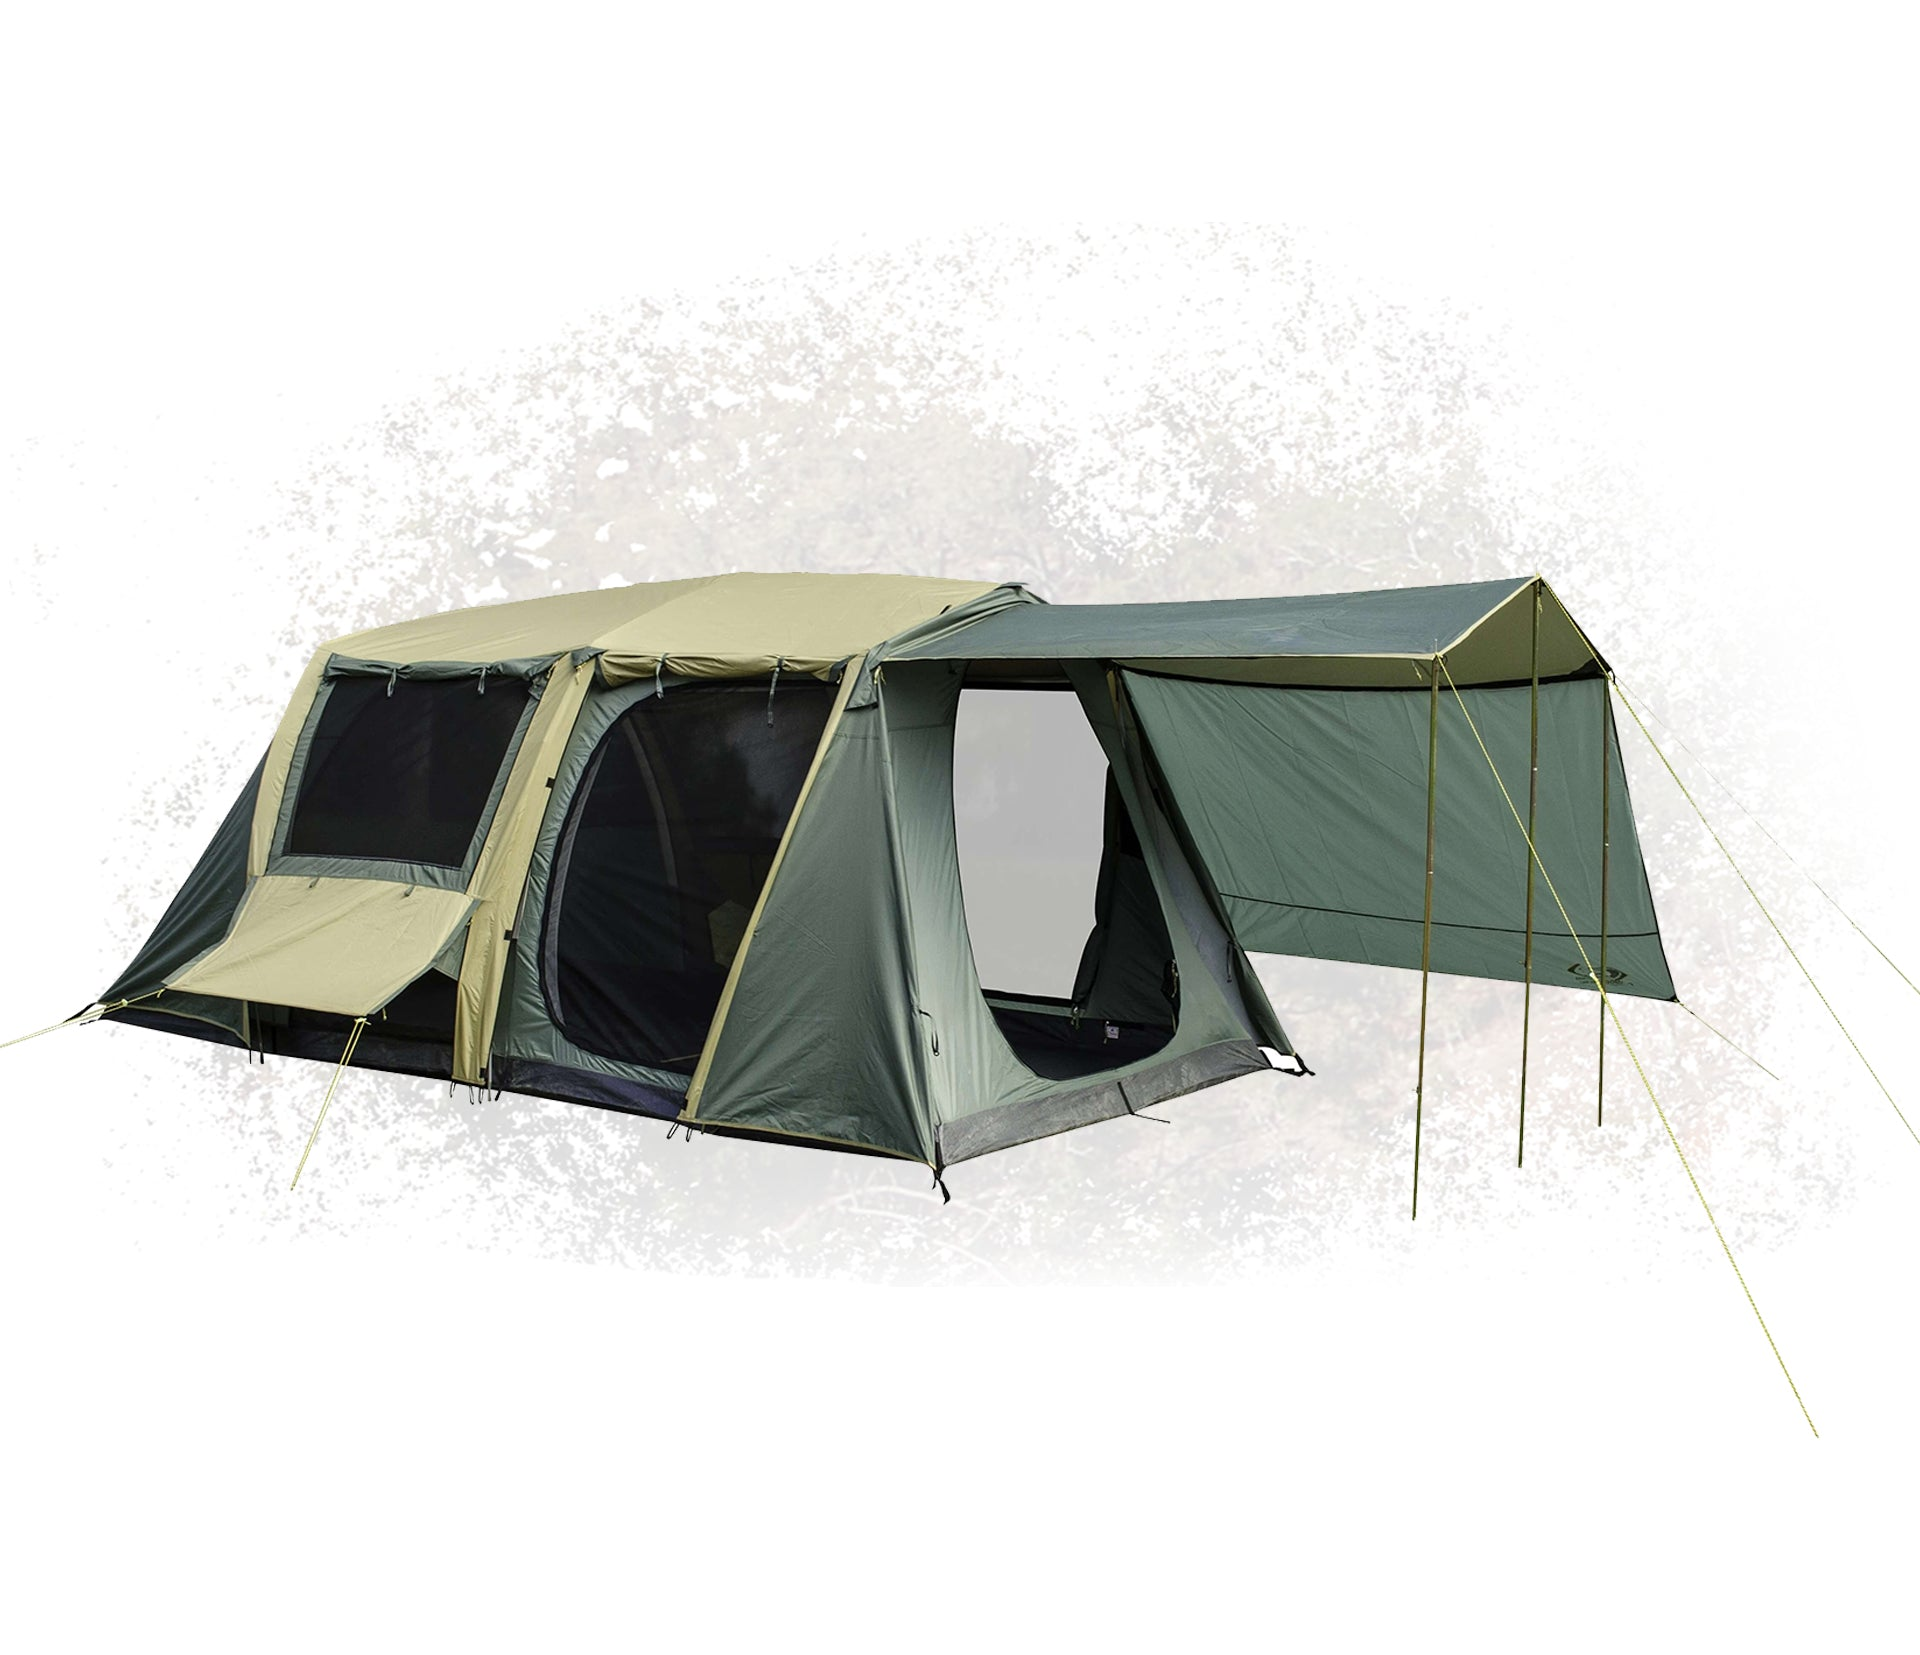 FAMILY TENT BEDARRA 2R FAMILY DOME TENT